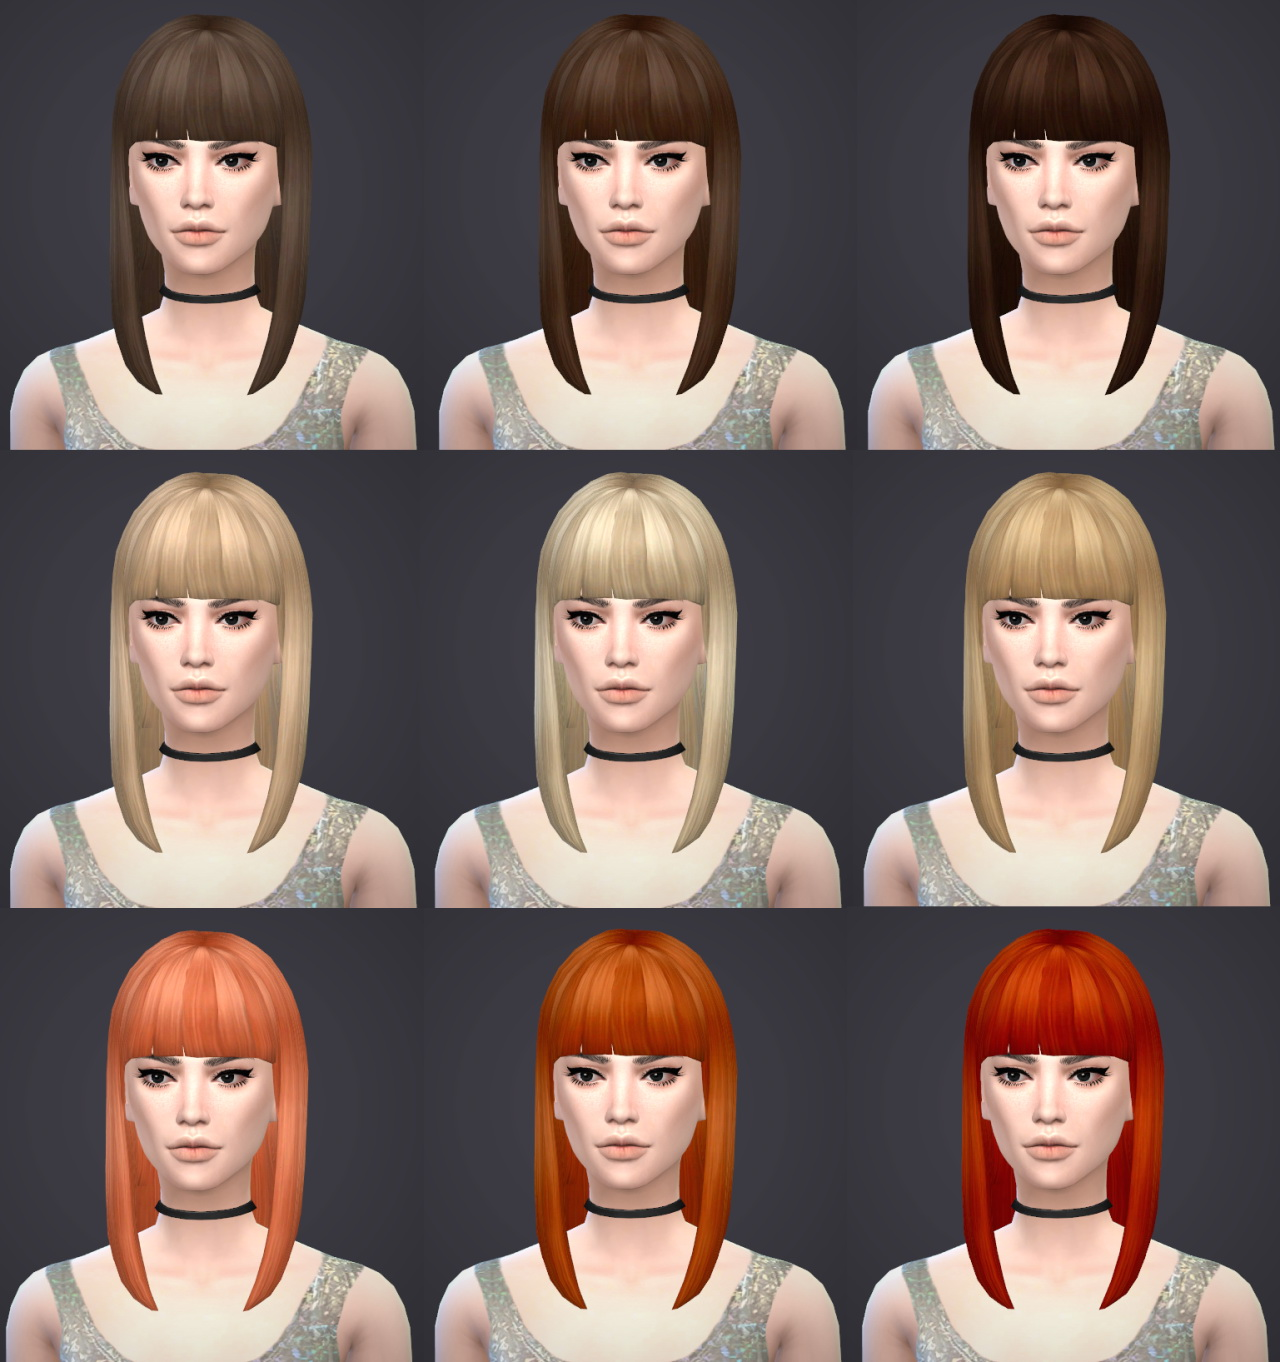 Sims 4 Hairs Salem2342 Mid Straight Bangs Hairstyle